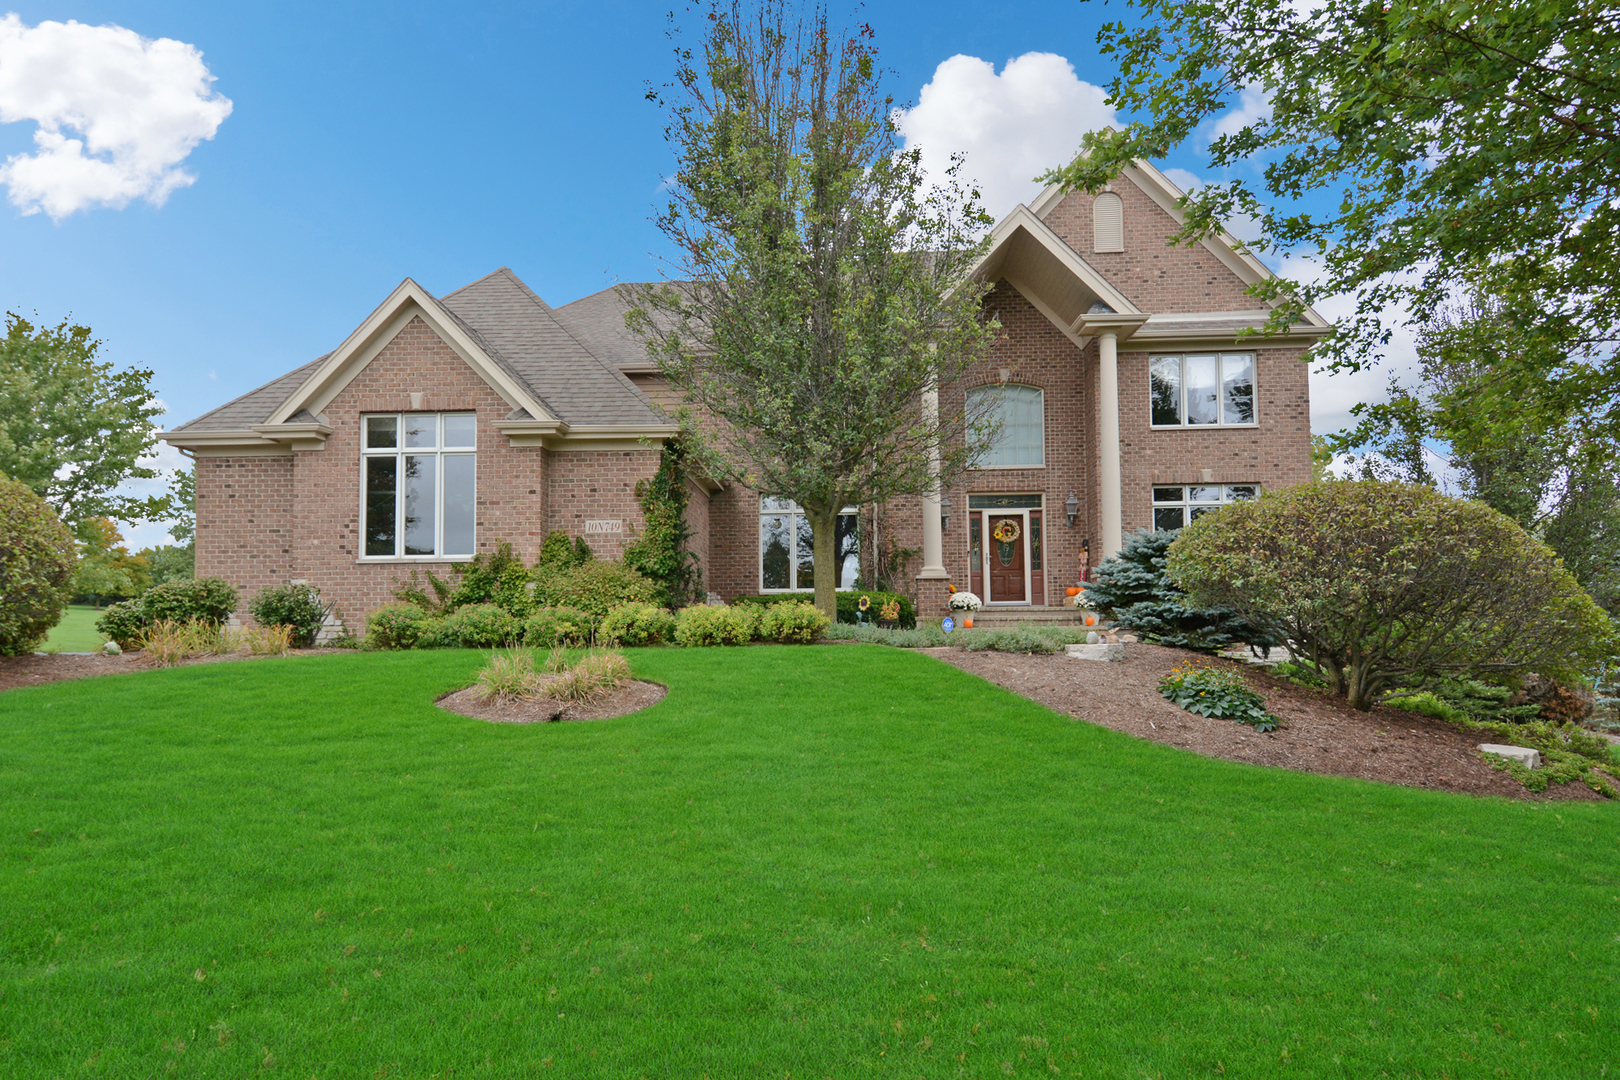 Photo for 10N749 Highland Trail, Hampshire, IL 60140 (MLS # 10895876)